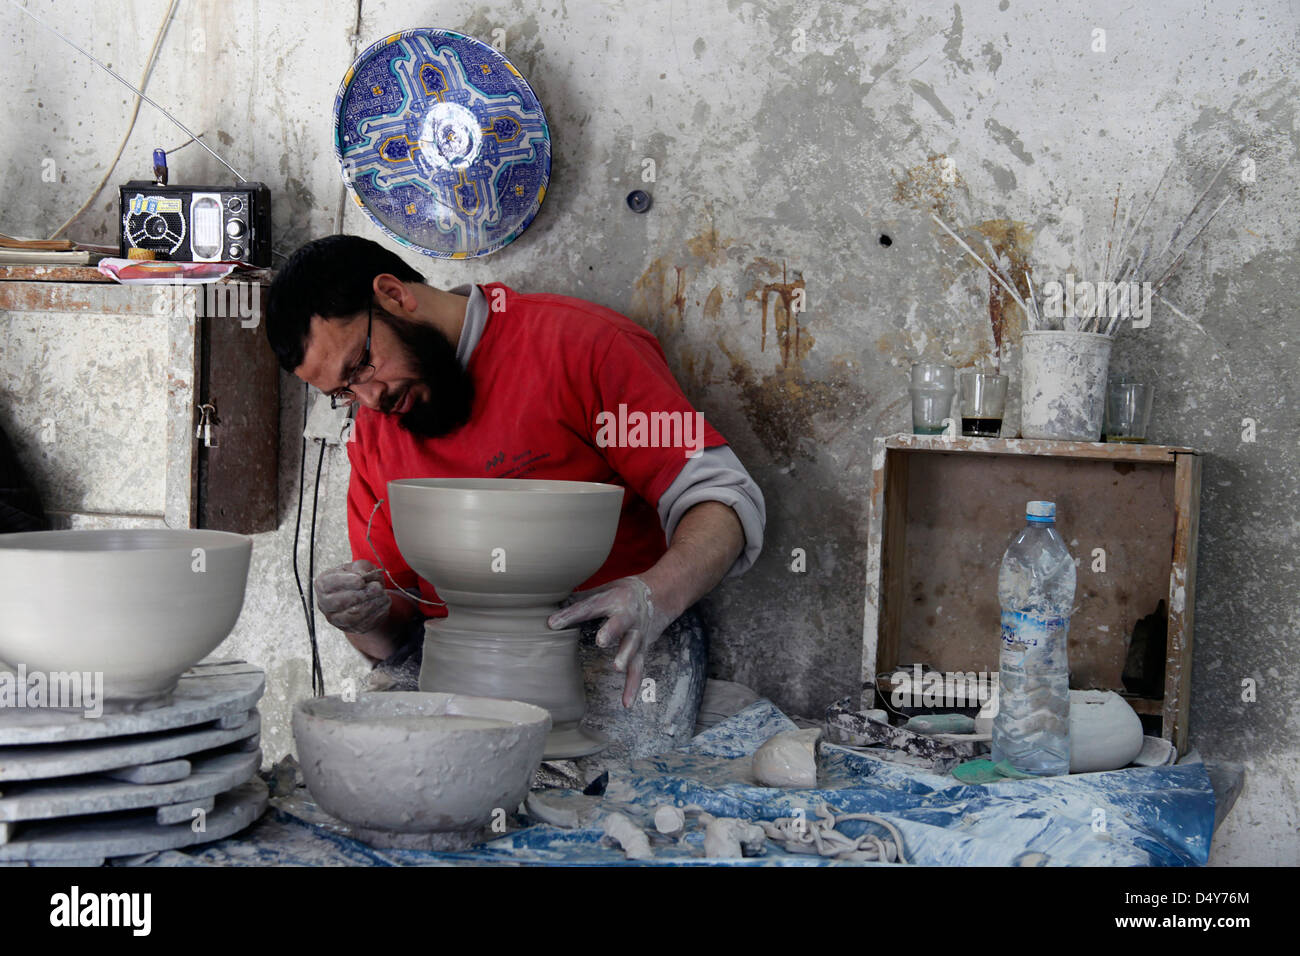 Morocco, Fes. Moroccan artisan spinning clay bowl. - Stock Image